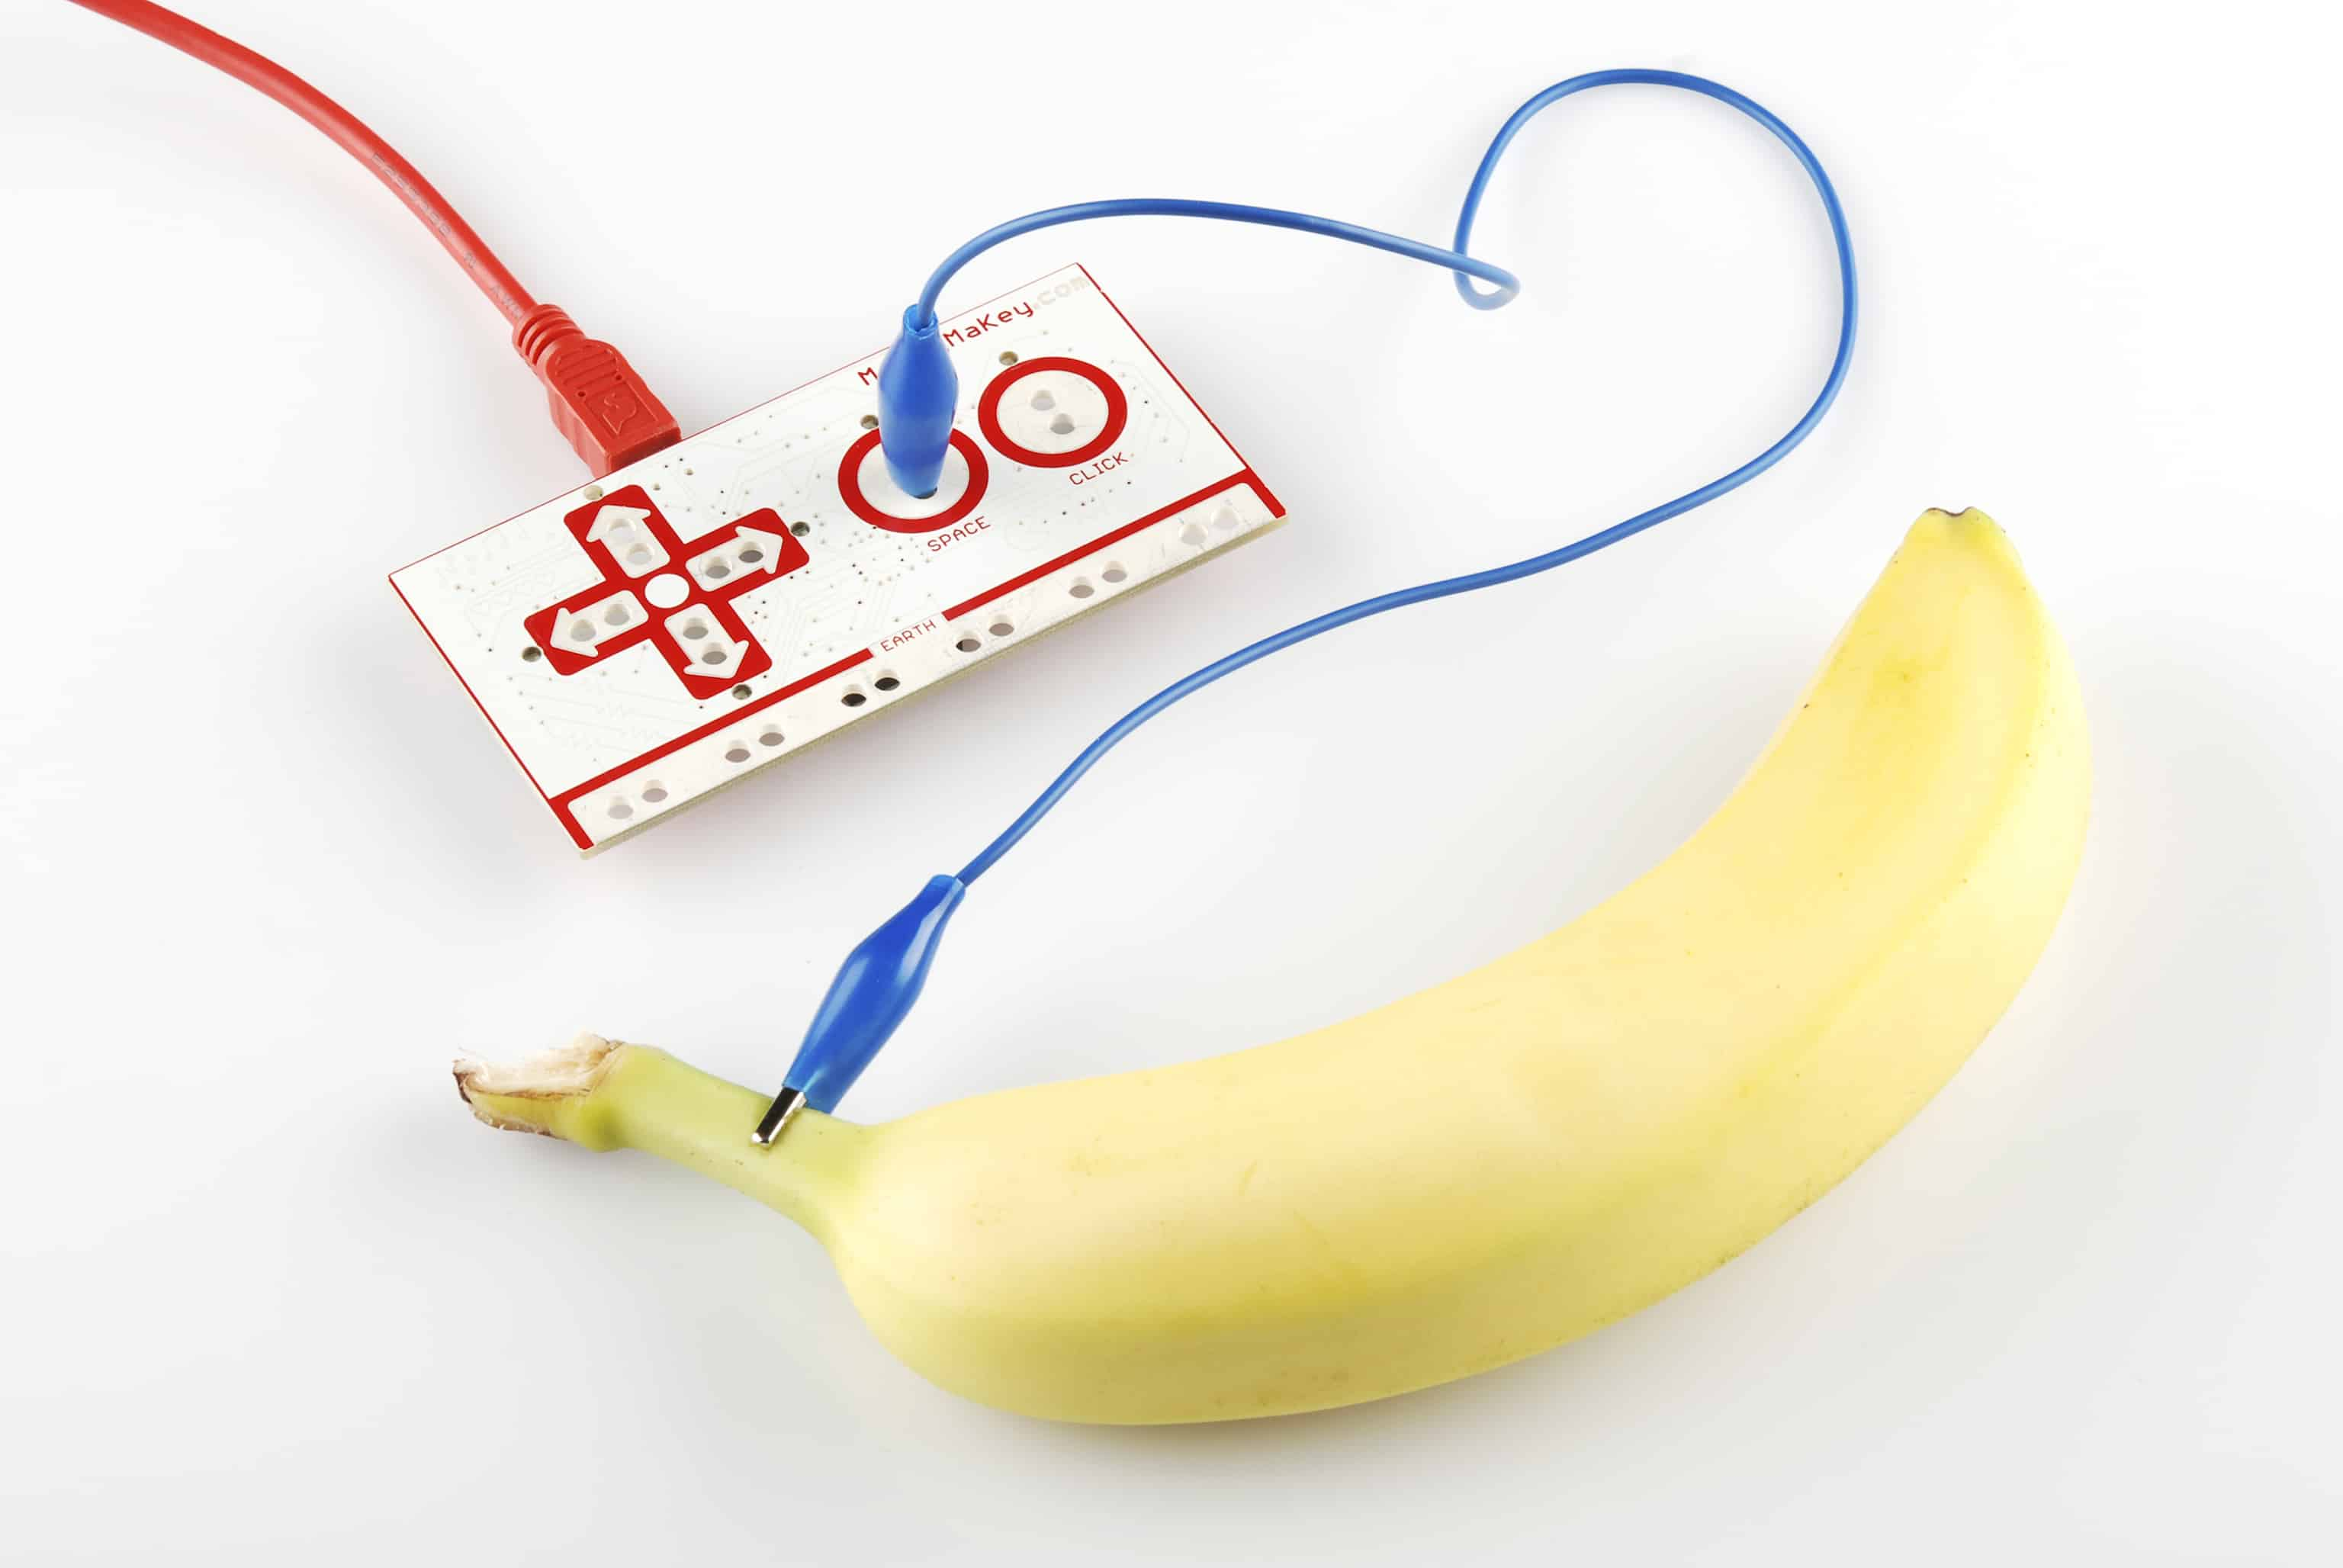 MaKey MaKey The Original Invention Kit for Everyone  Banana